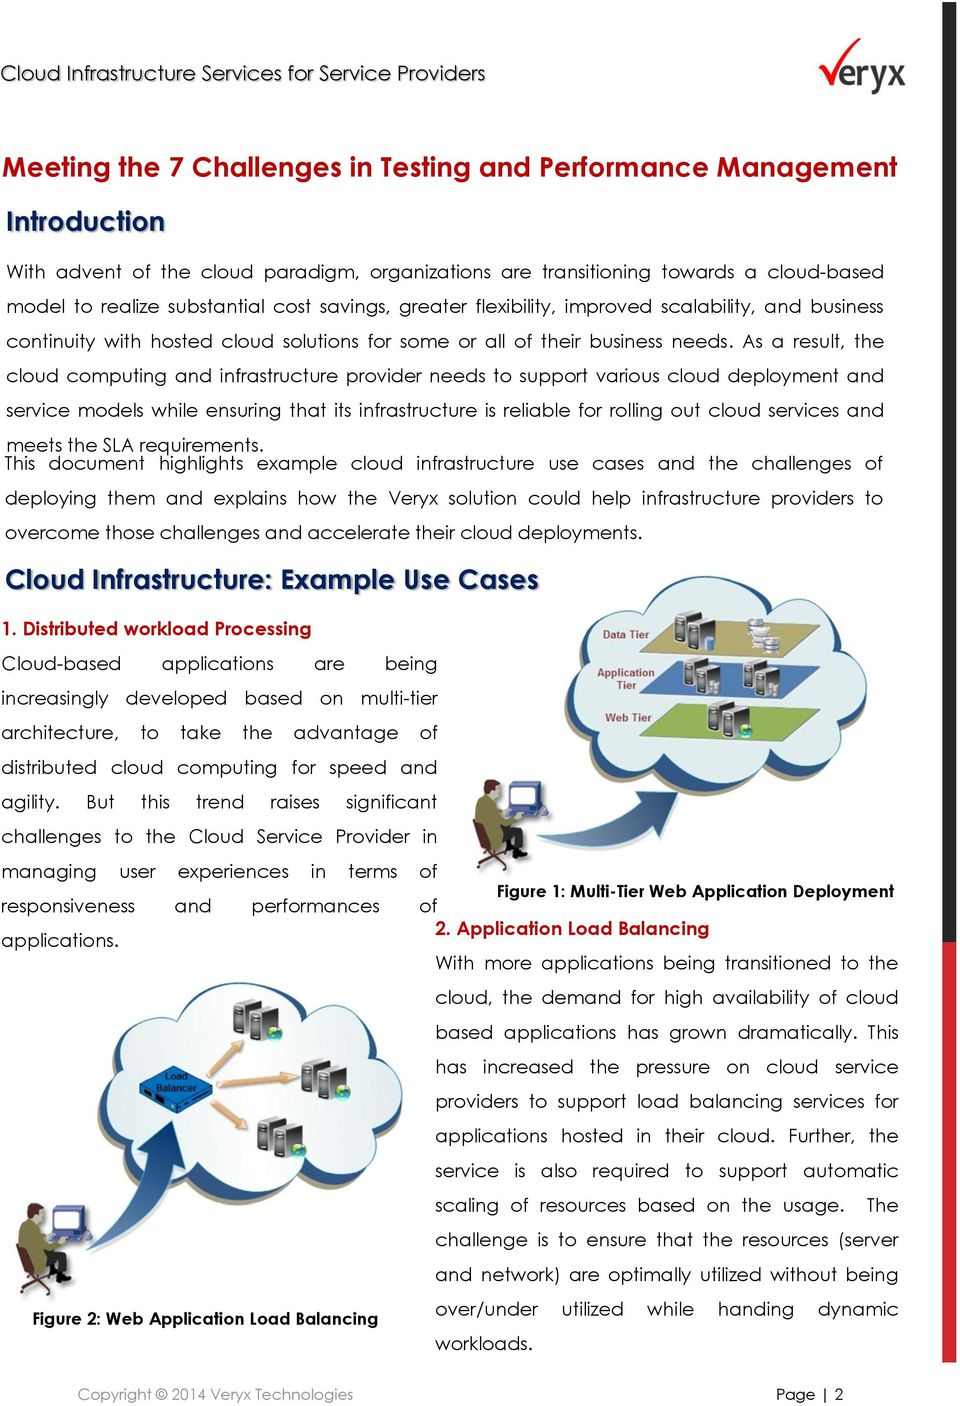 As a result, the cloud computing and infrastructure provider needs to support various cloud deployment and service models while ensuring that its infrastructure is reliable for rolling out cloud